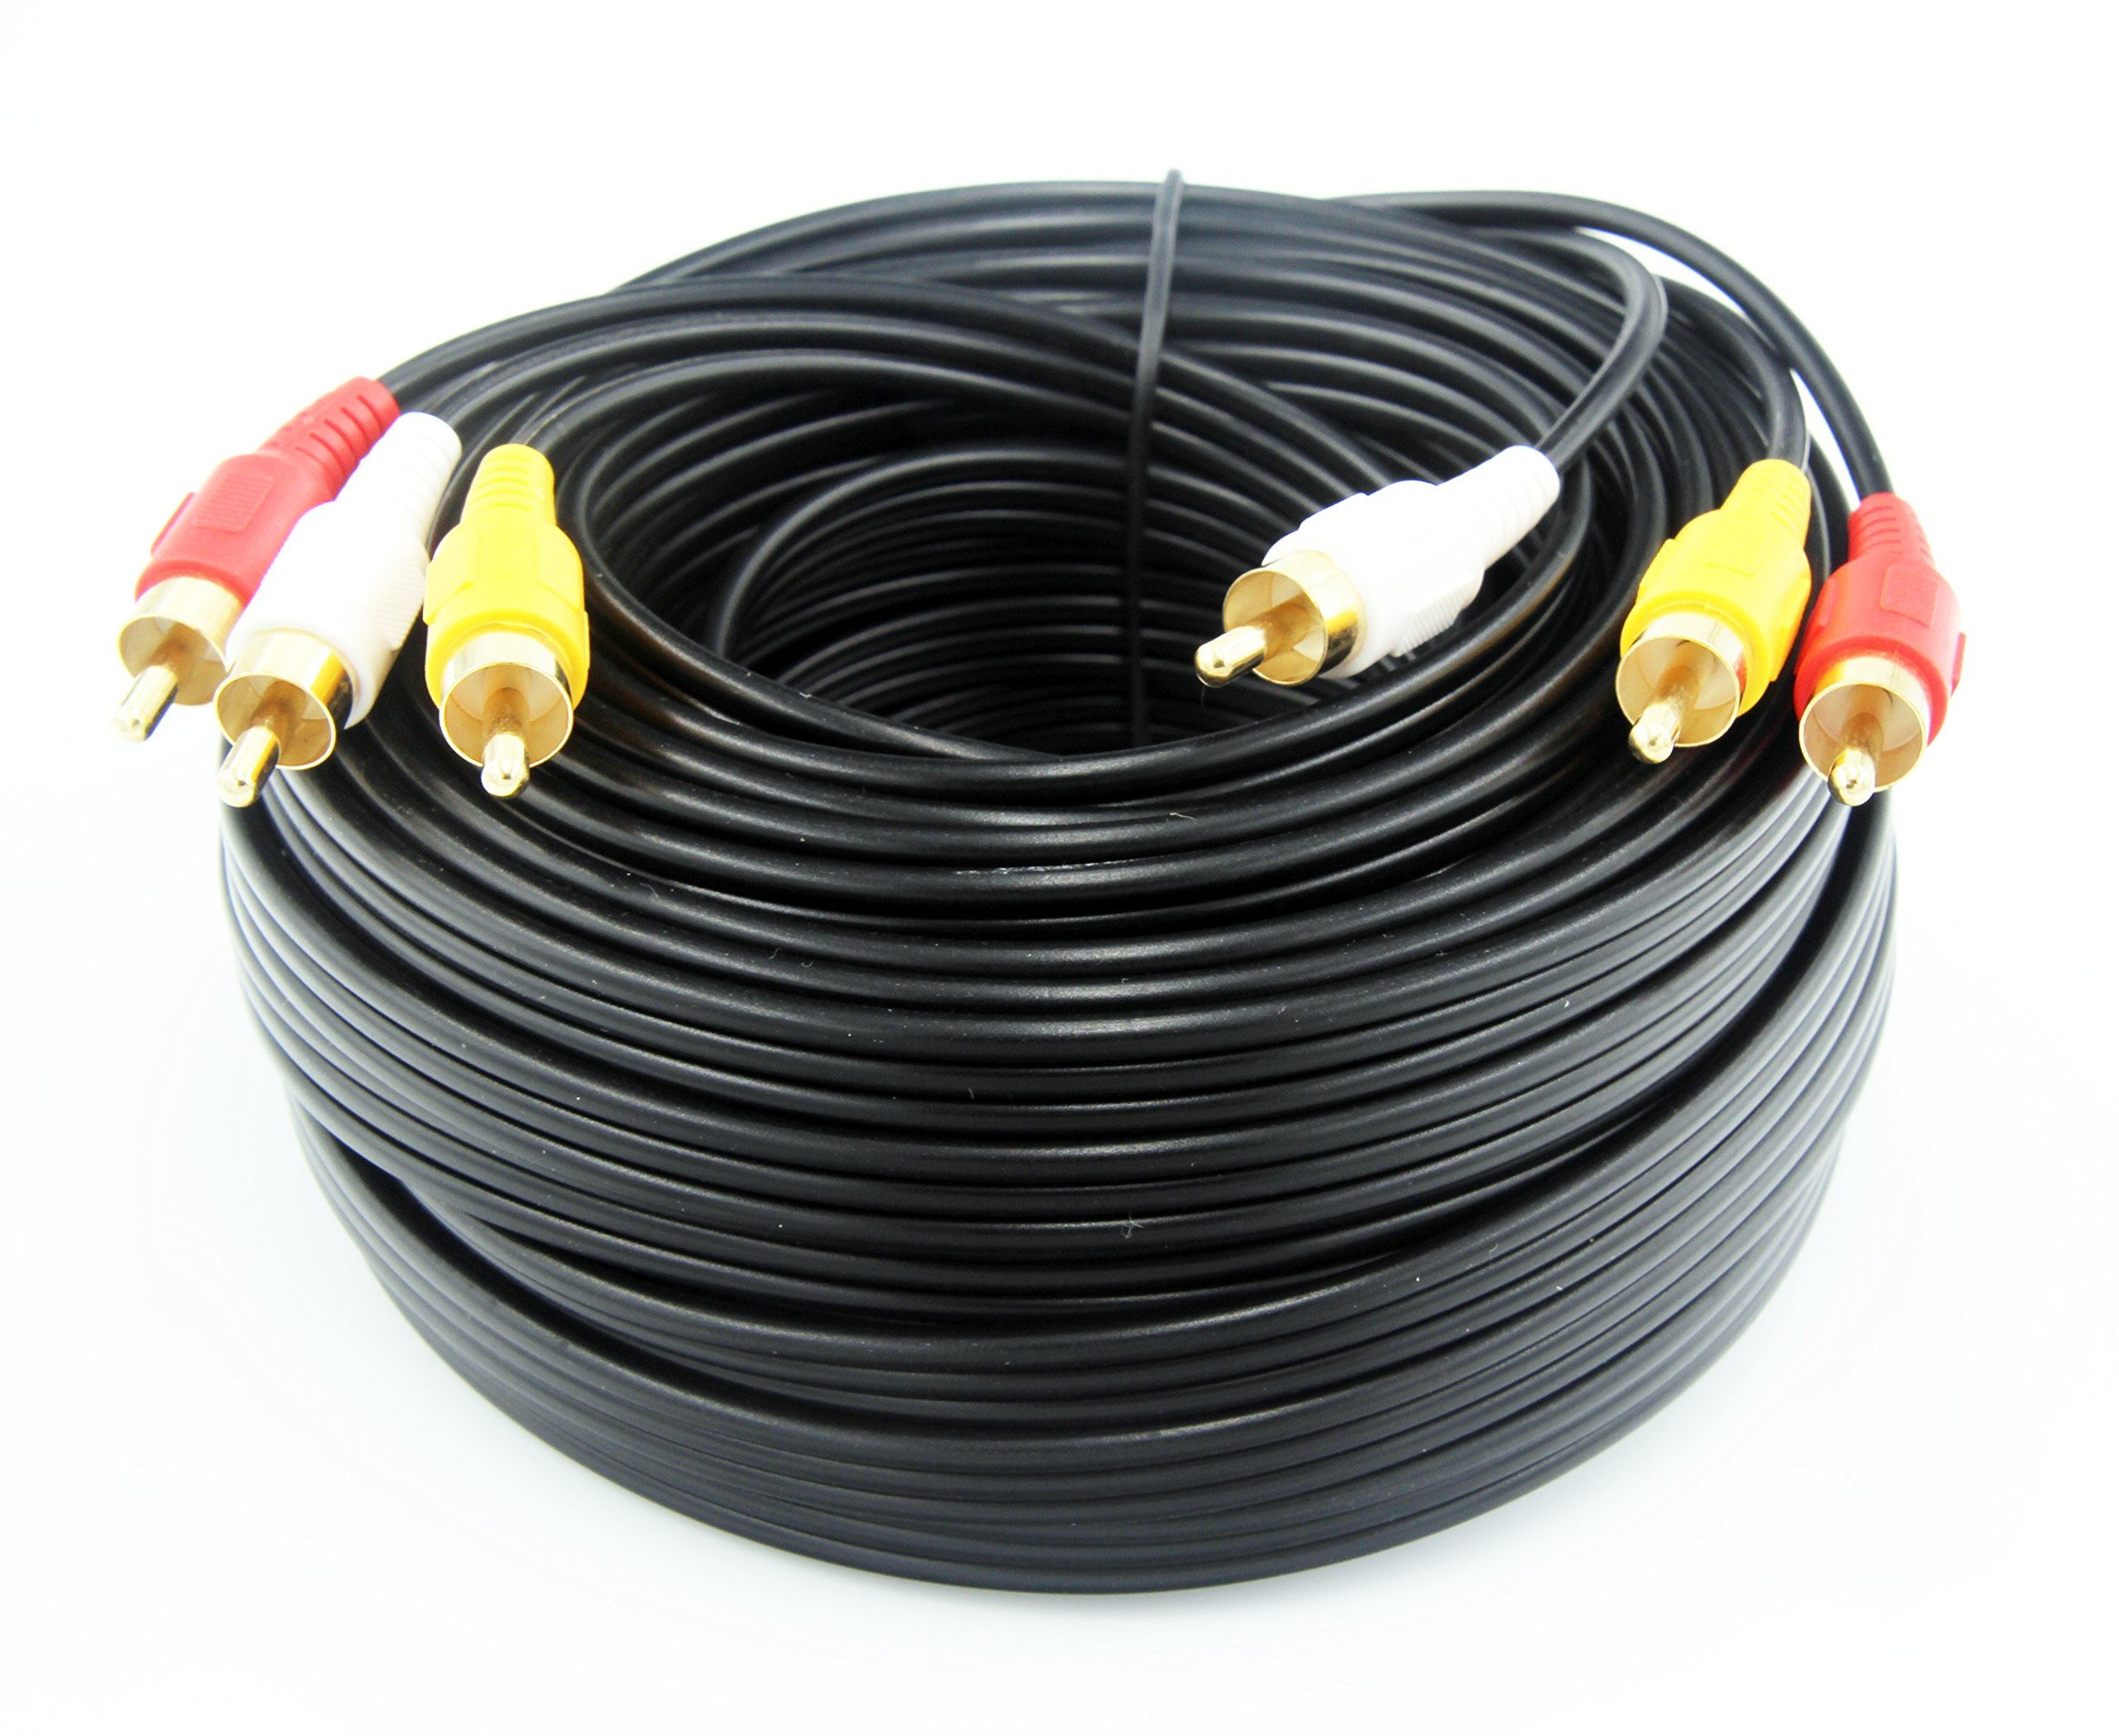 50FT/15M RCA M/Mx3 Audio/Video Cable Gold Plated - Audio Video RCA Stereo Cable 50FT by Nice tech